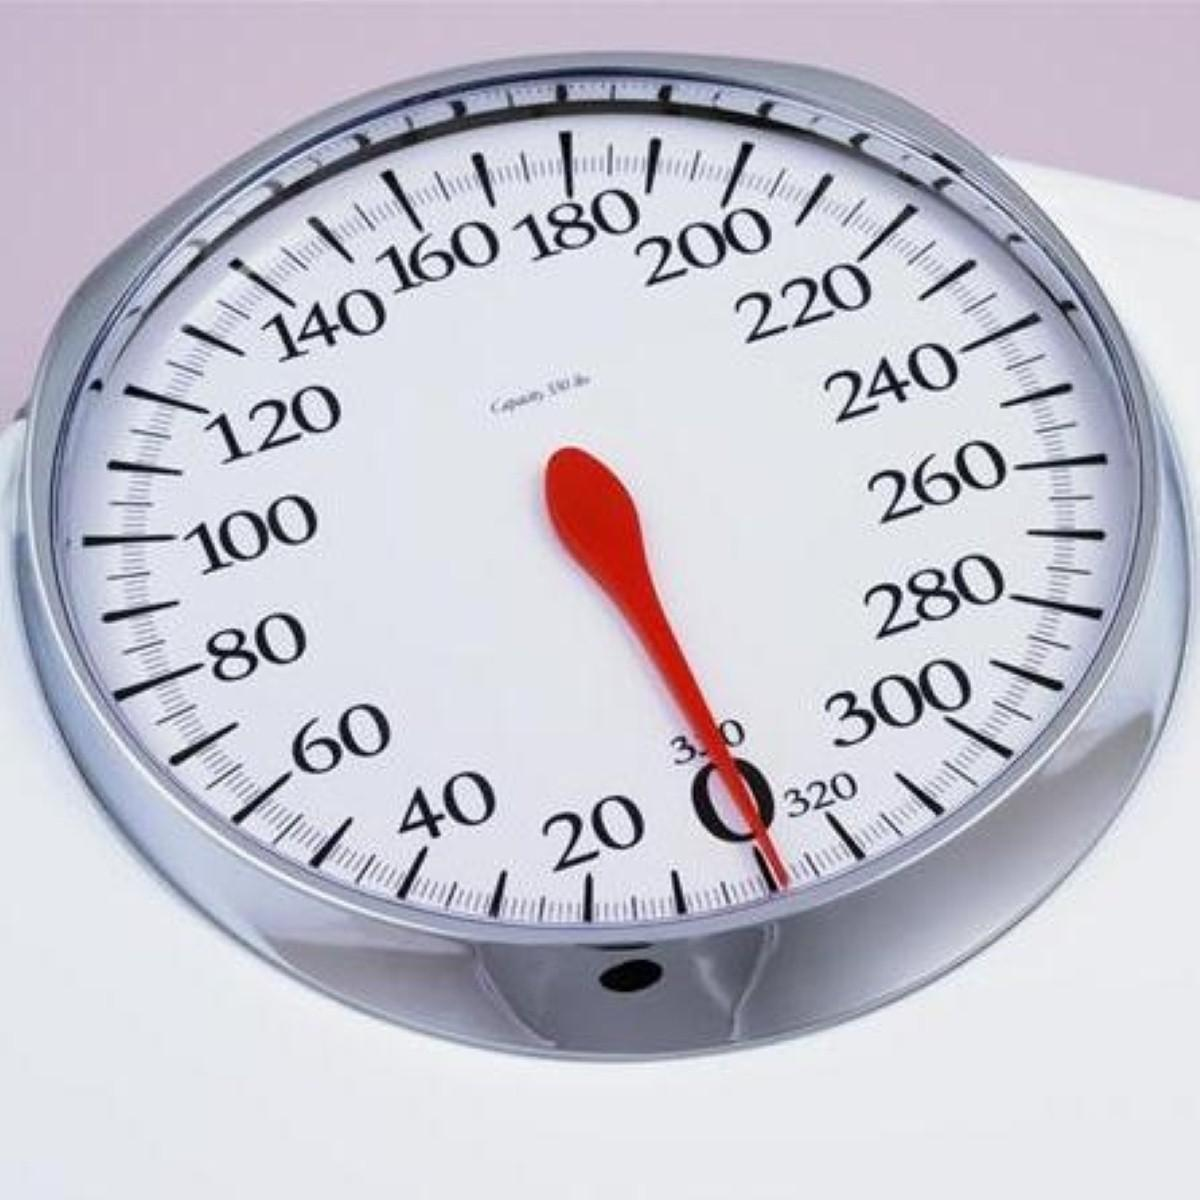 Excess body fat in older adults 'may shorten life expectancy'